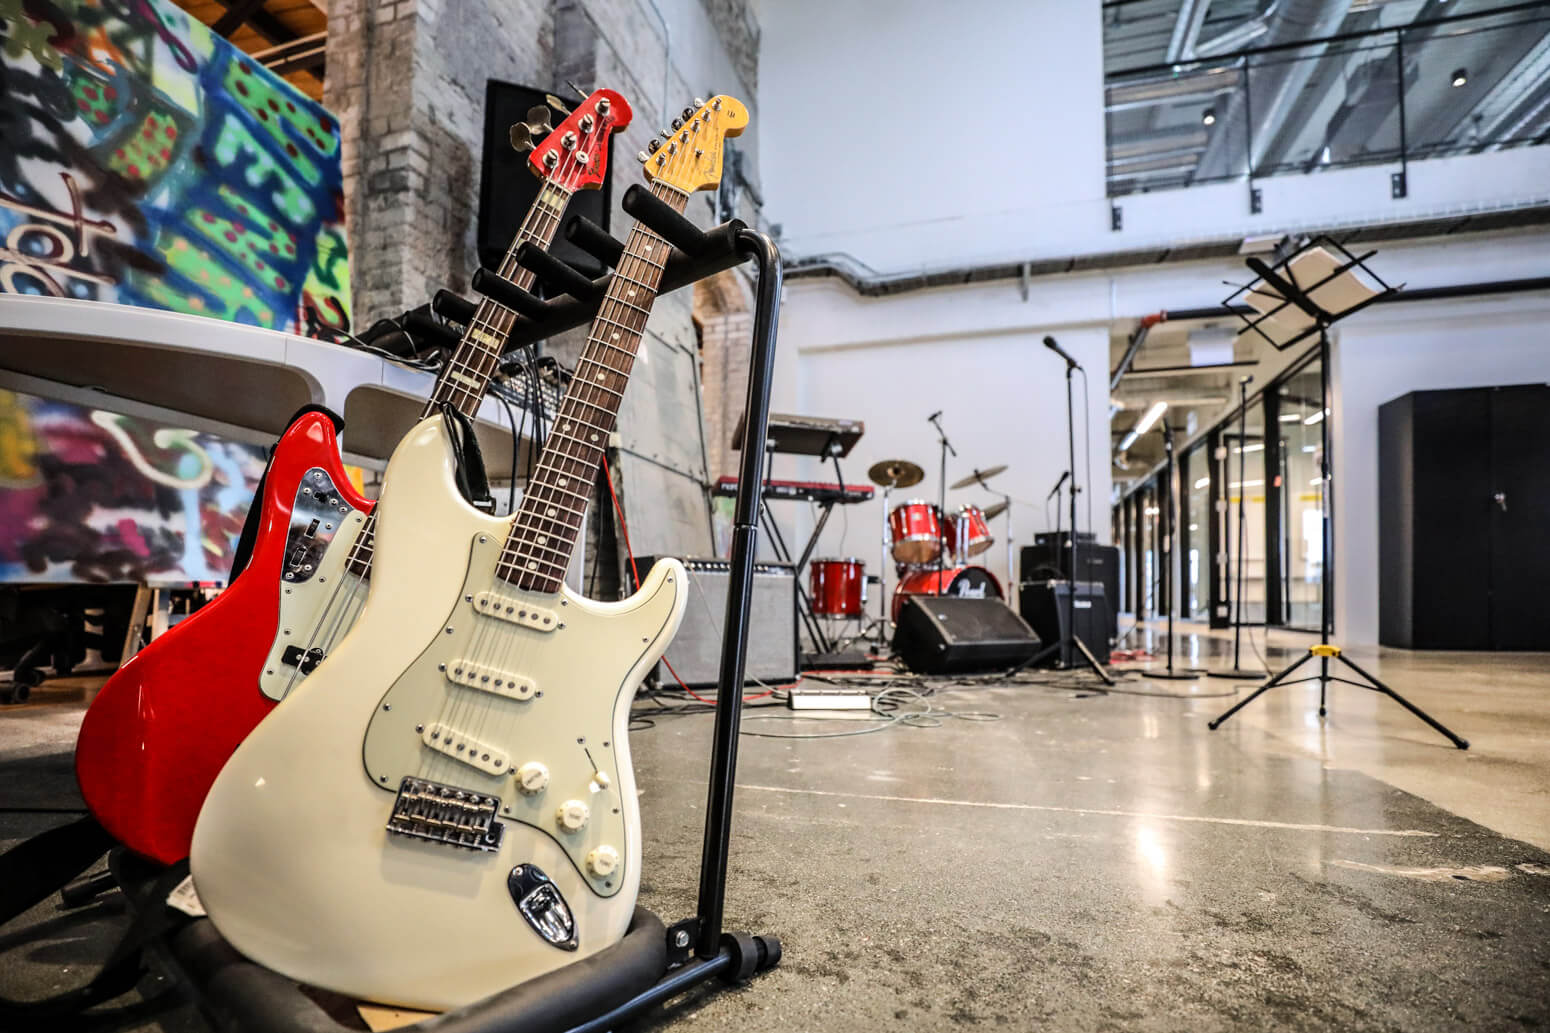 Vena Solutions new office offers an impressively equipped jam space.